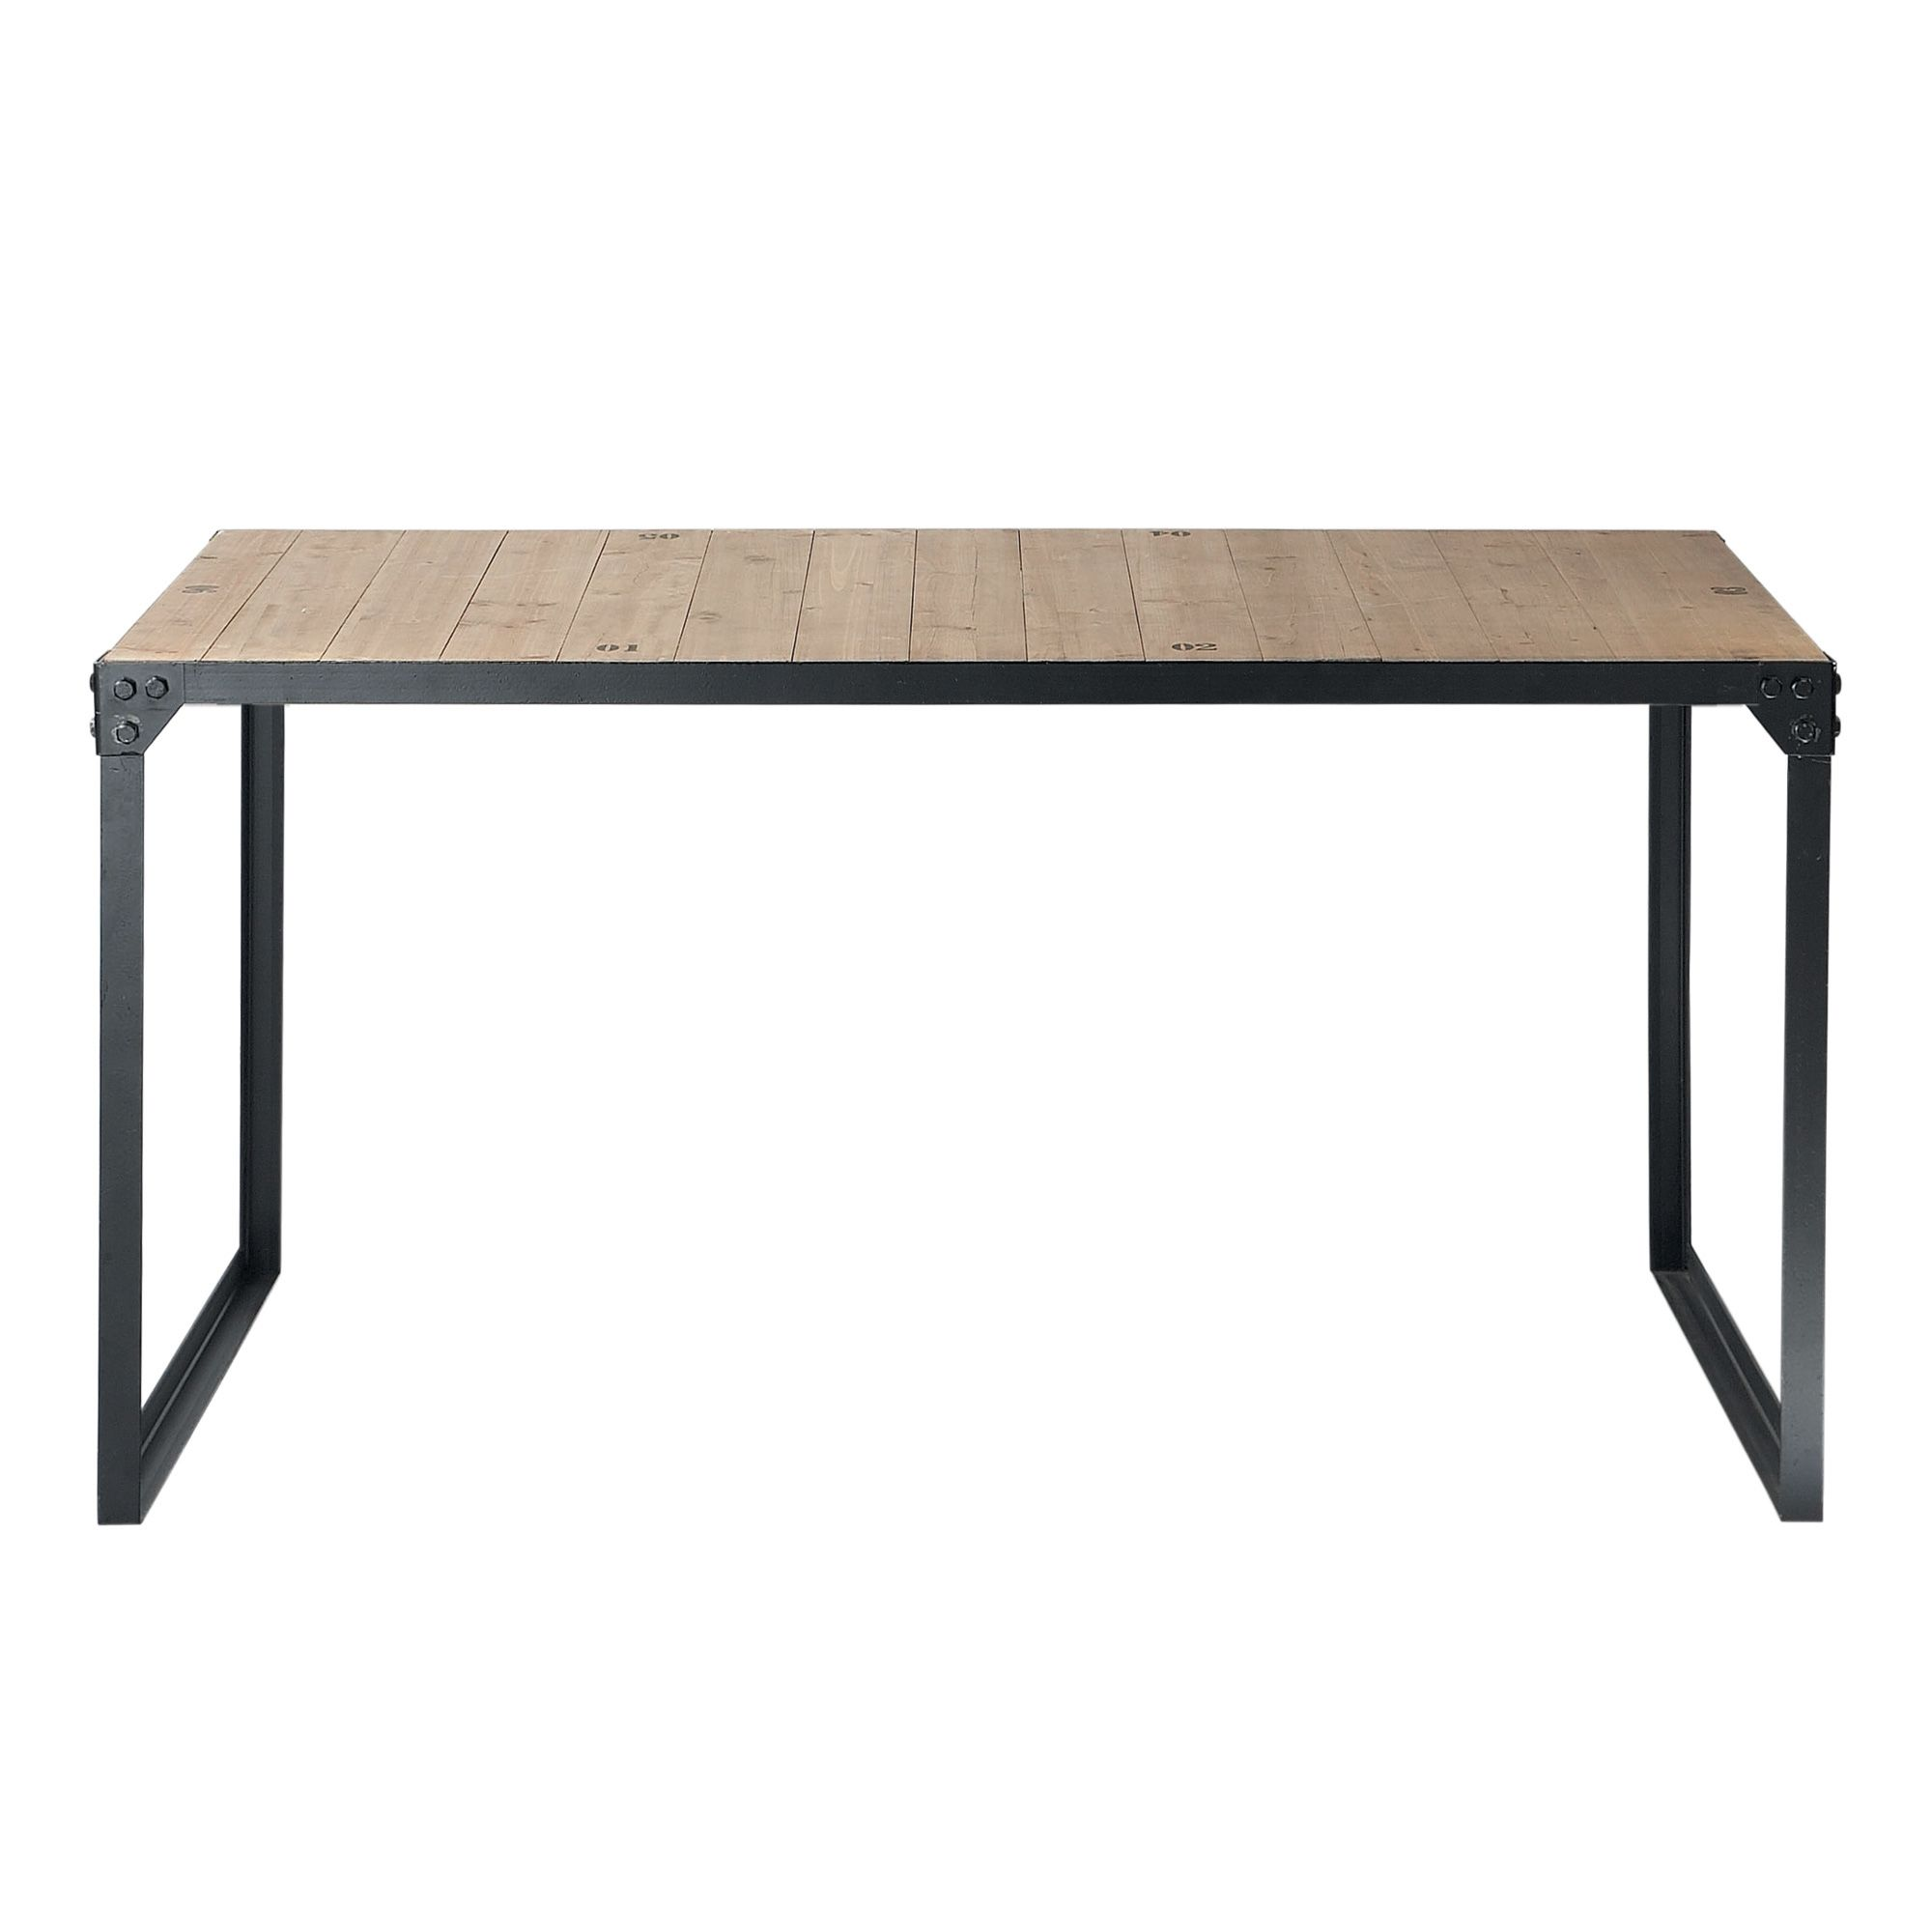 Wood And Metal Industrial Dining Table W 140cm Docks | Maisons Du Monde